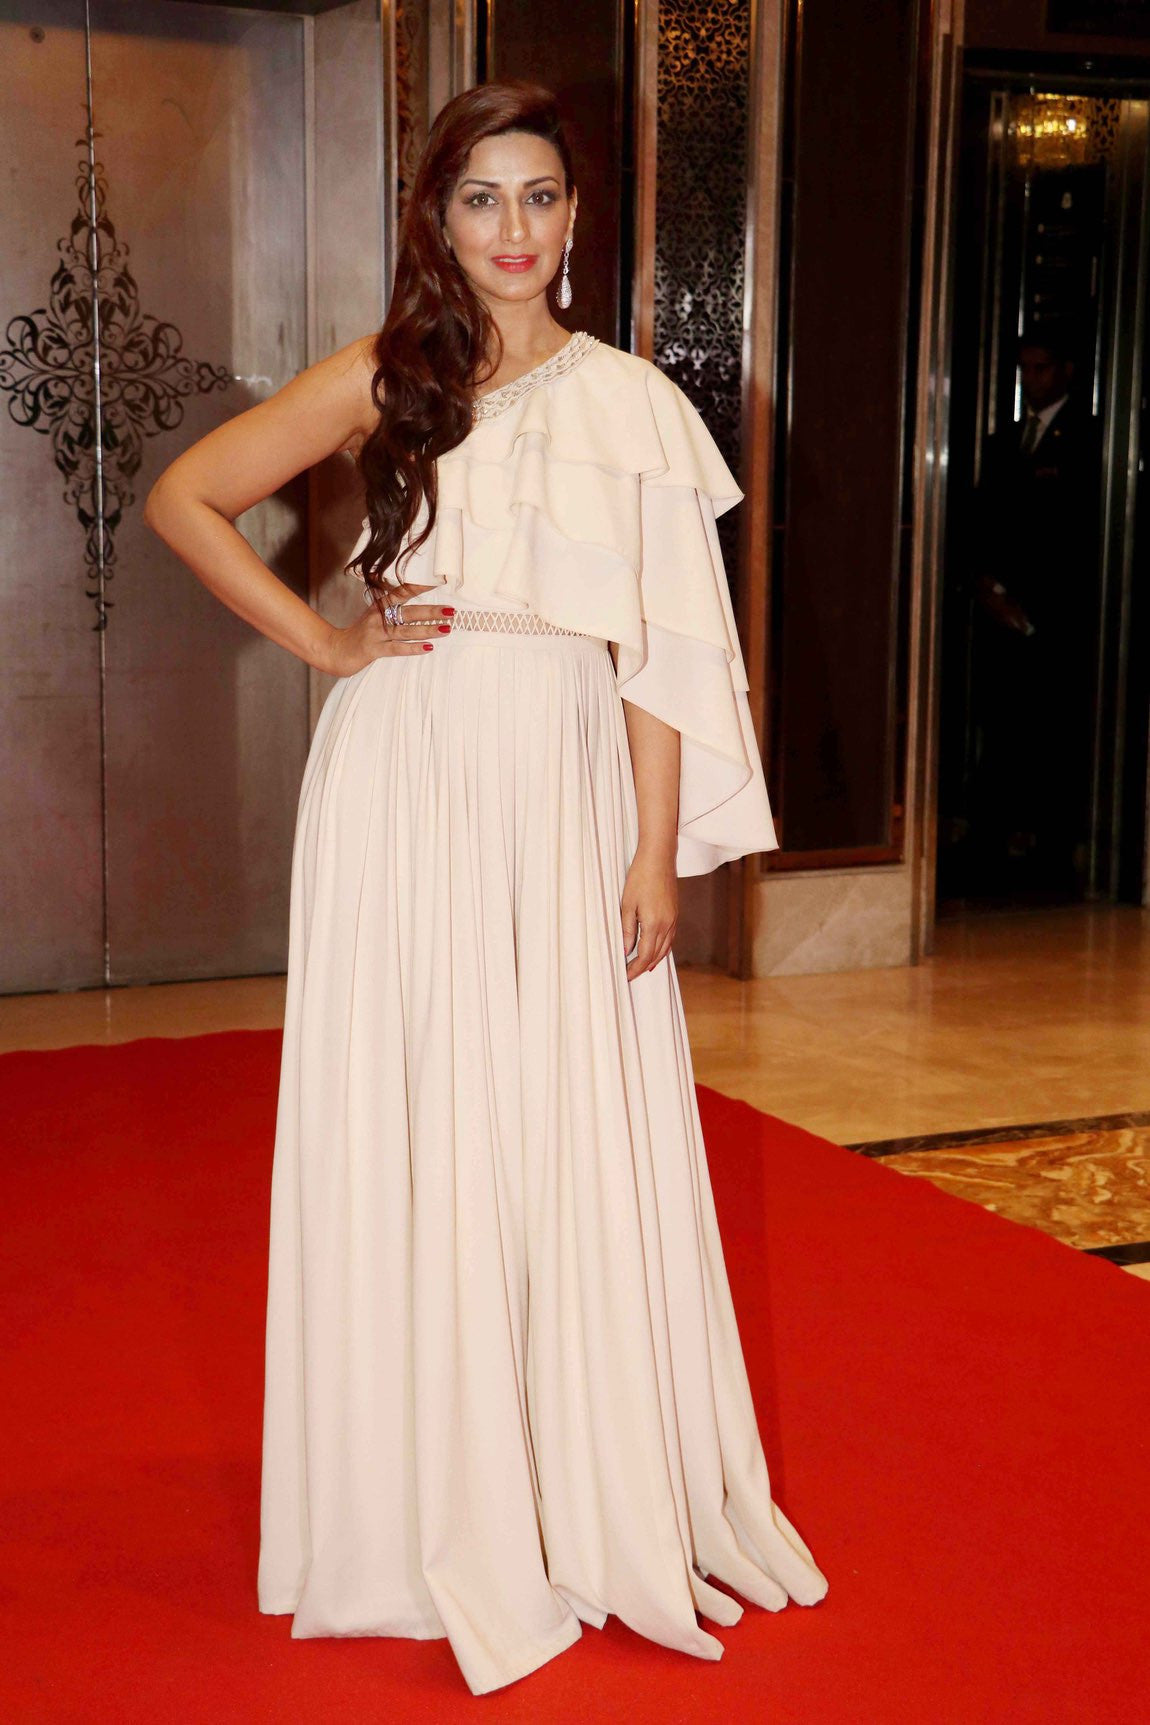 Sonali Bendre in Ridhi Mehra SS17 Collotion's Ivory off-shoulder ruffles gown at Asia Spa awards